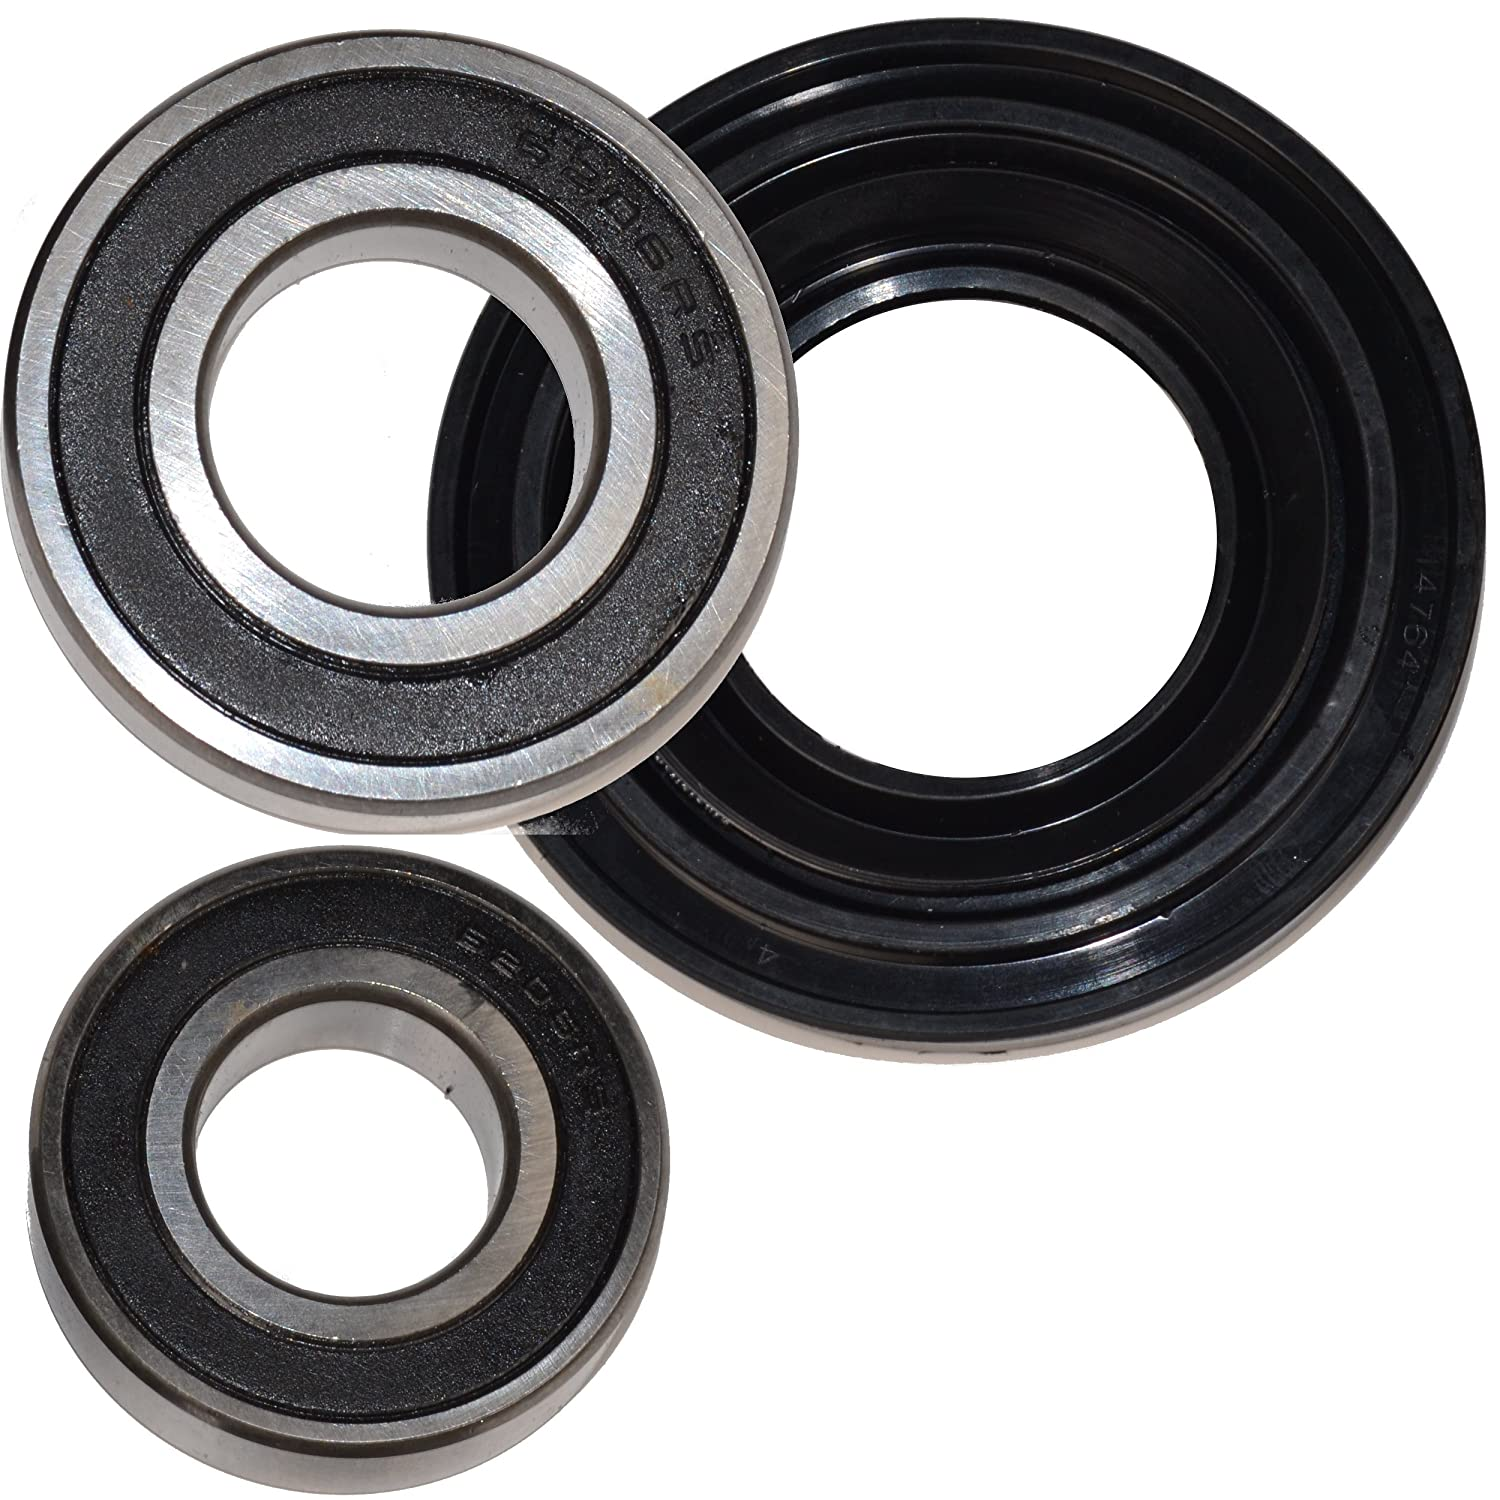 HQRP Bearing and Seal Kit for Whirlpool Duet Sport WFW8200TW01 WFW8300SW0 WFW8300SW01 WFW8300SW02 WFW8300SW03 WFW8300SW1 Front Load Washer Tub + HQRP Coaster